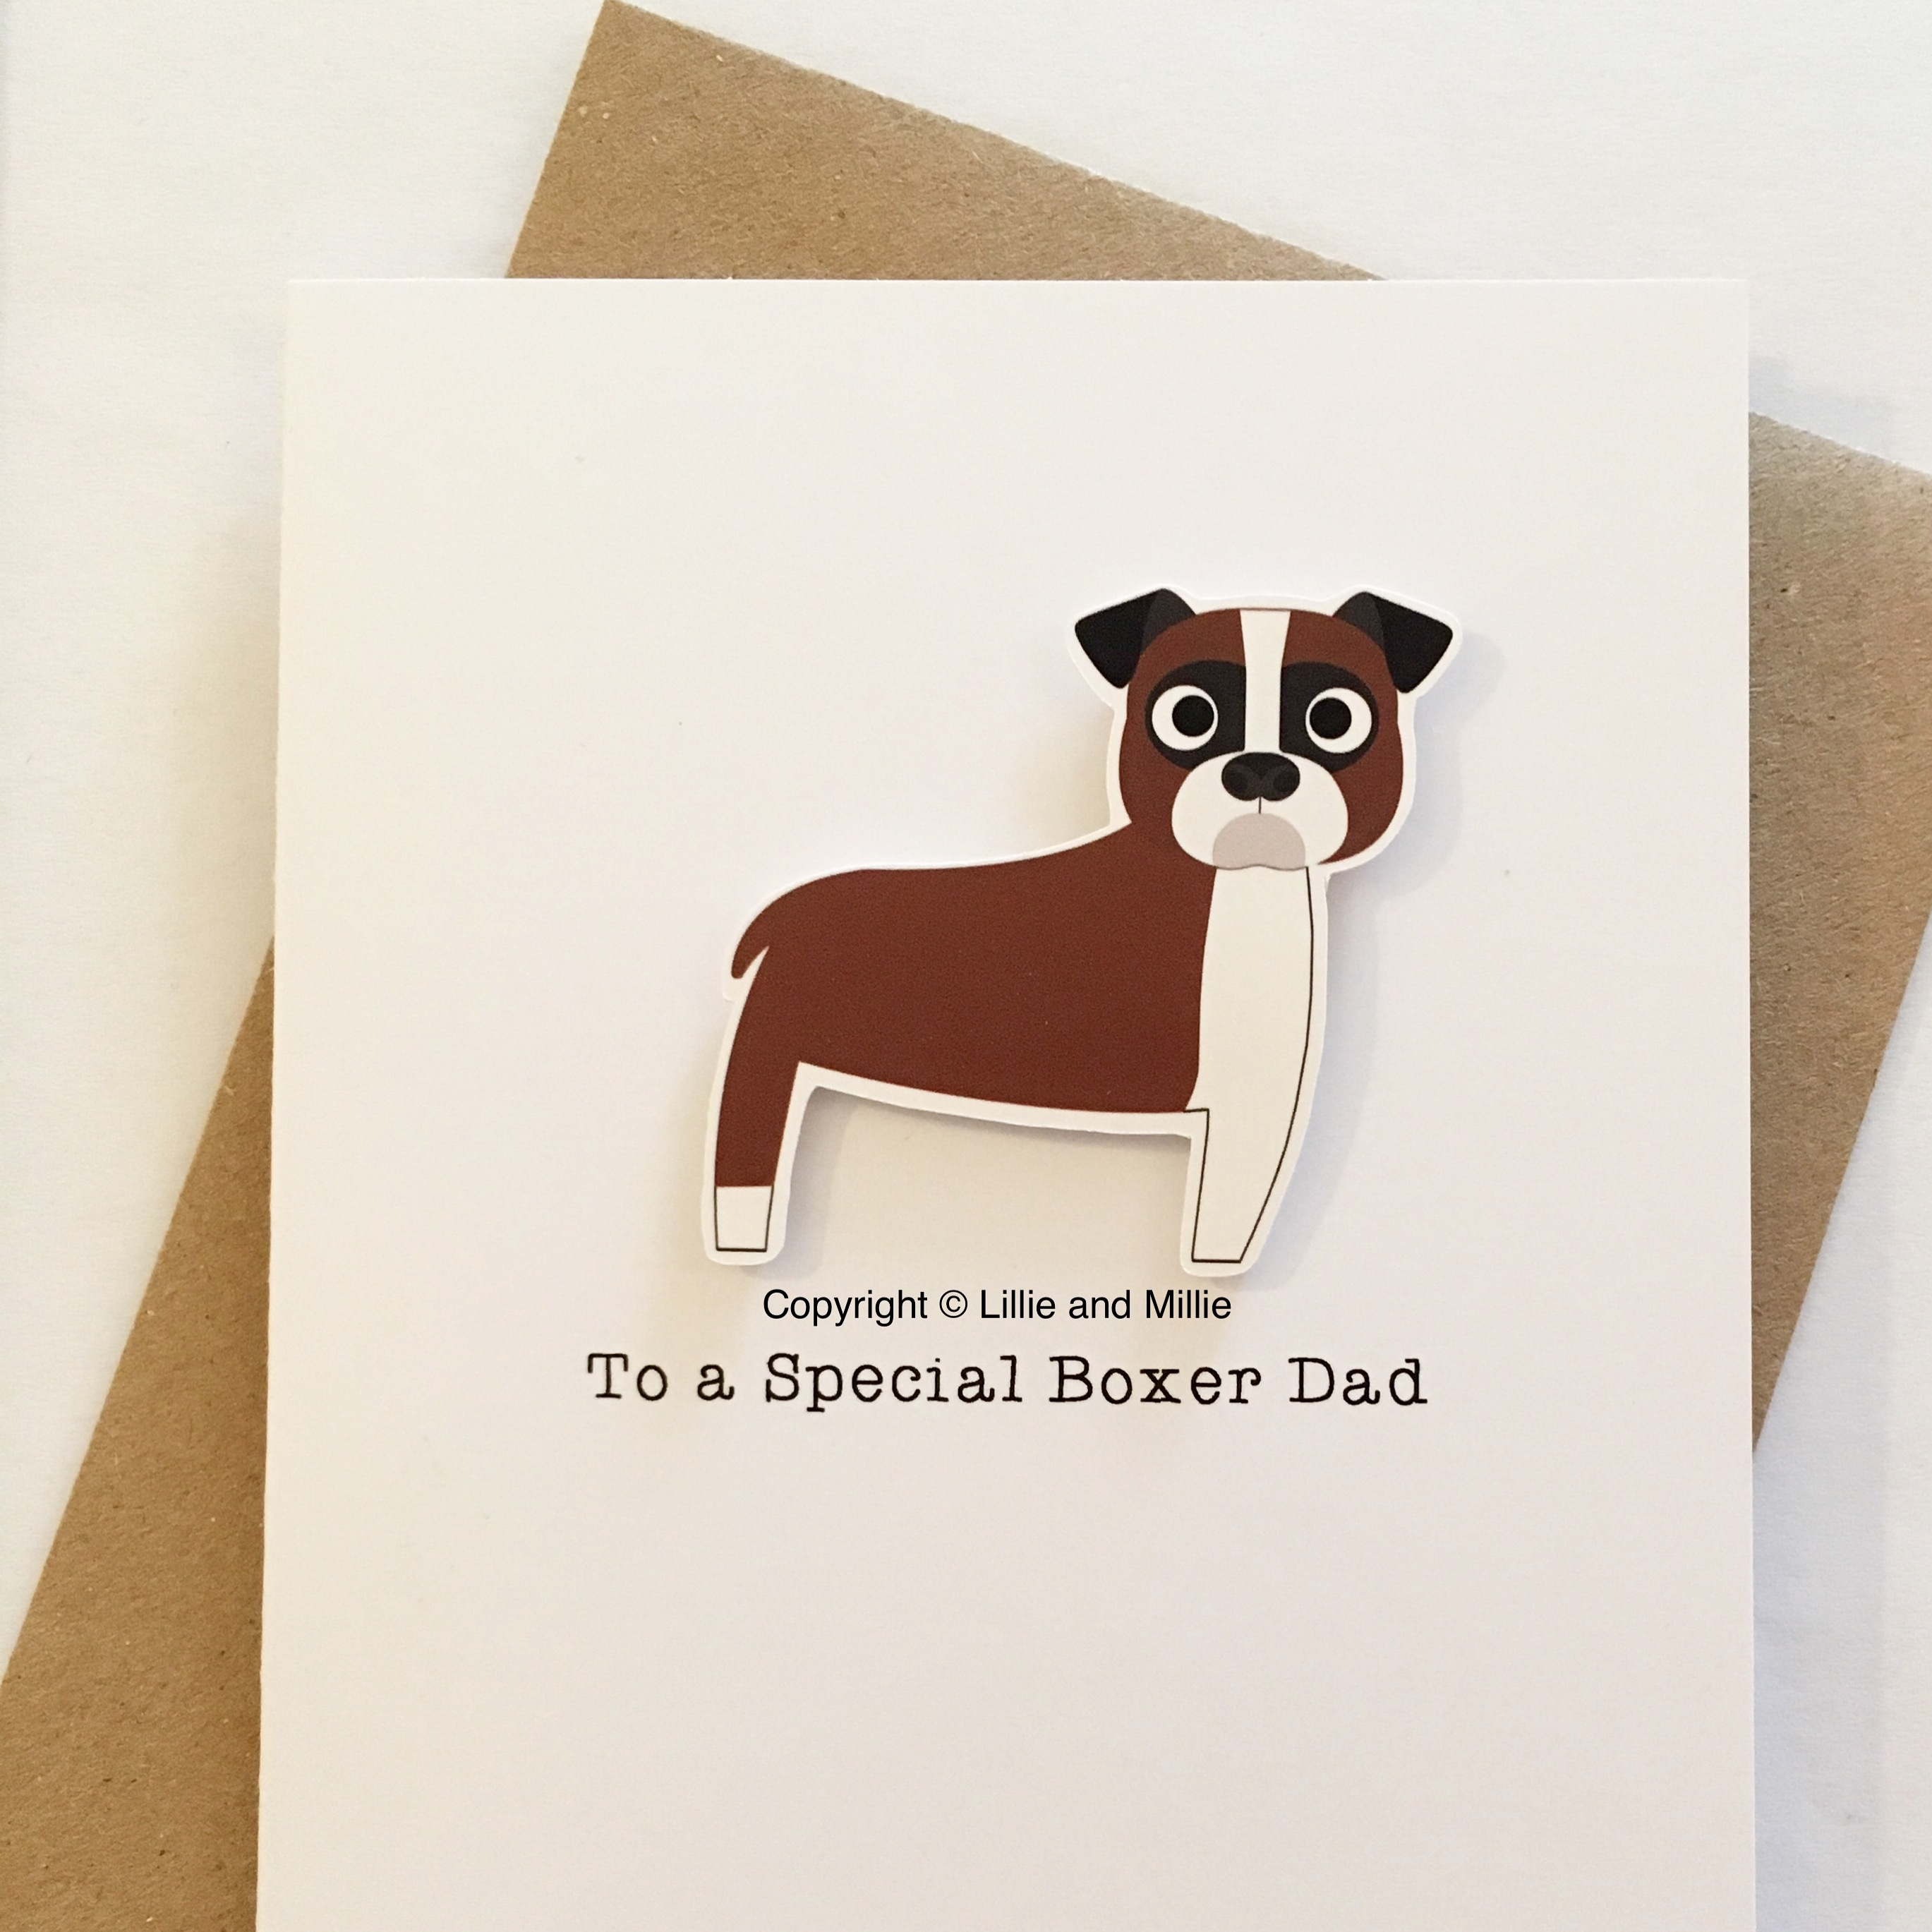 Cute and Cuddly To a Special Boxer Dad Card